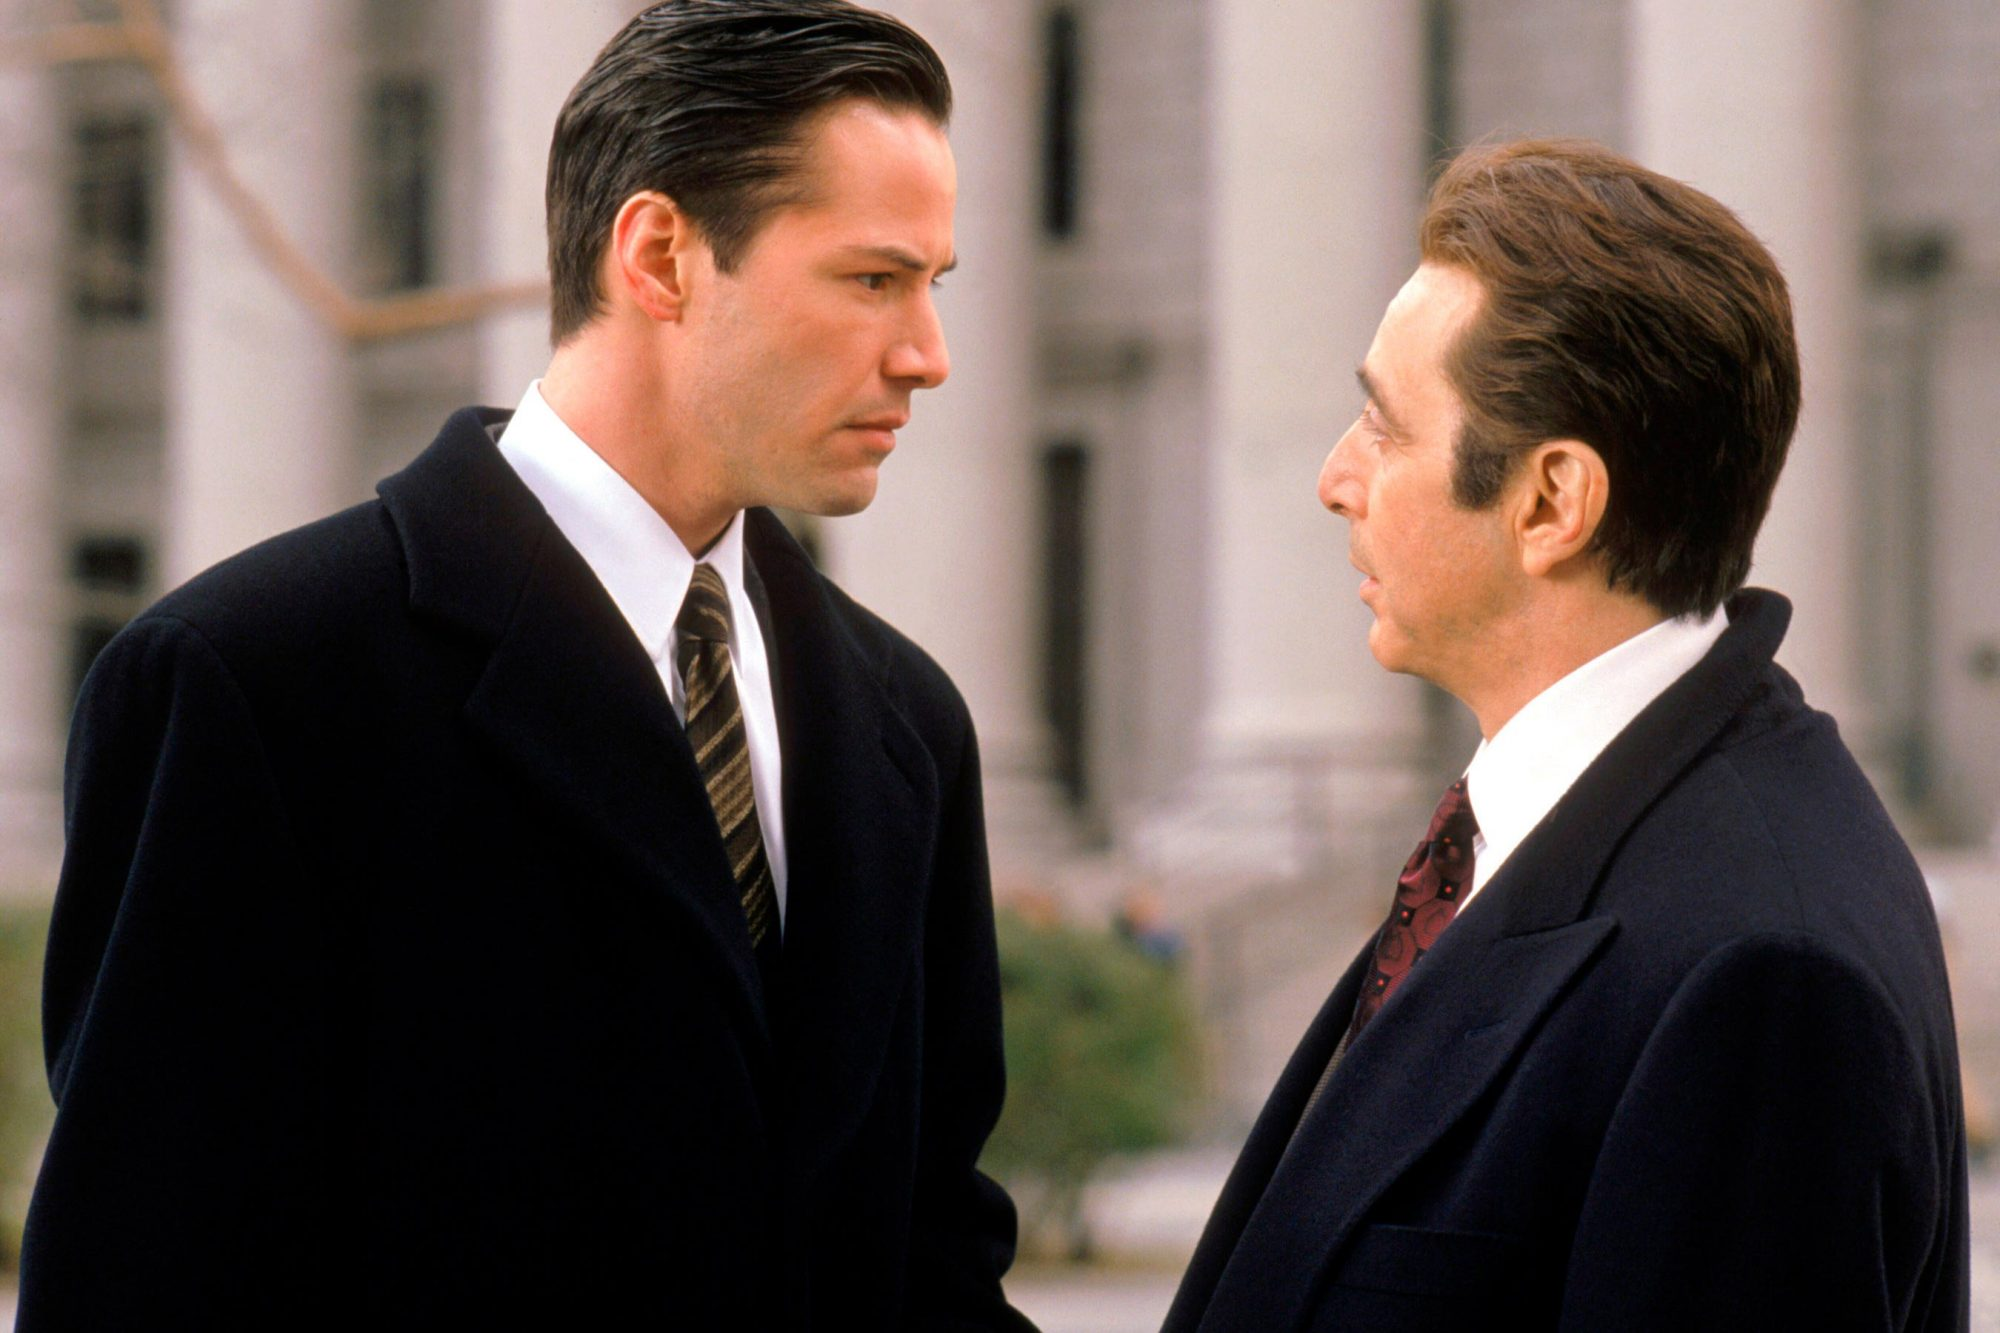 THE DEVIL'S ADVOCATE, from left: Keanu Reeves, Al Pacino, 1997, ©Warner Bros./courtesy Everett Colle